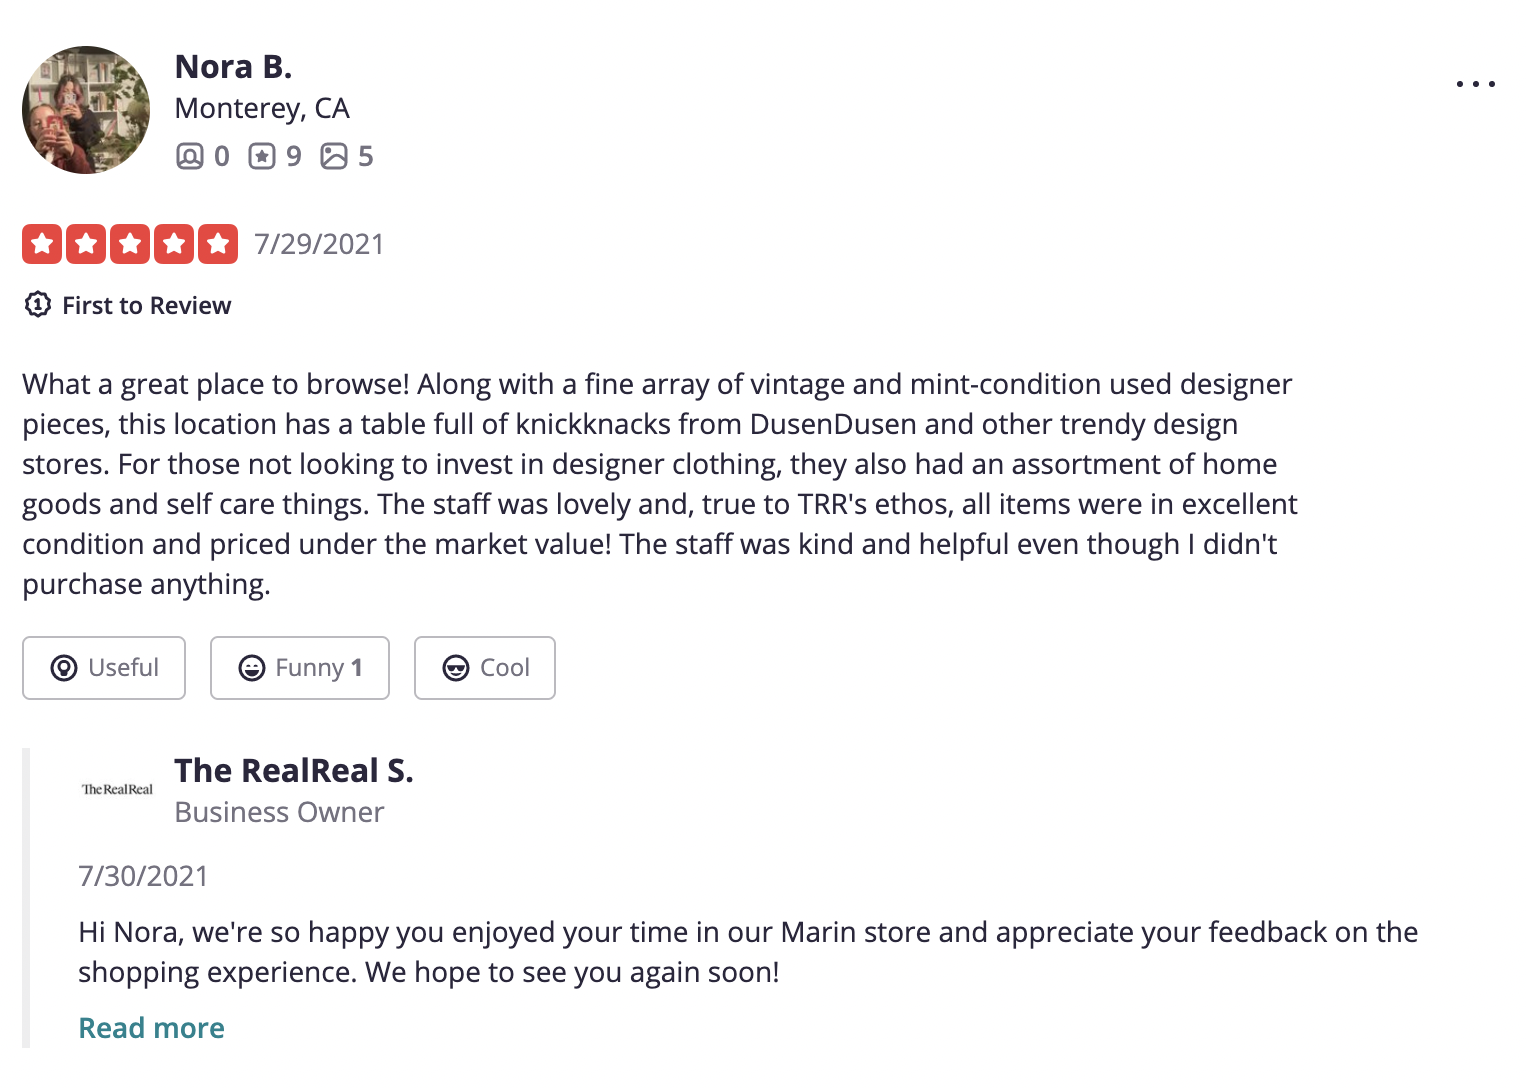 Example of a positive review / experience being responded to.